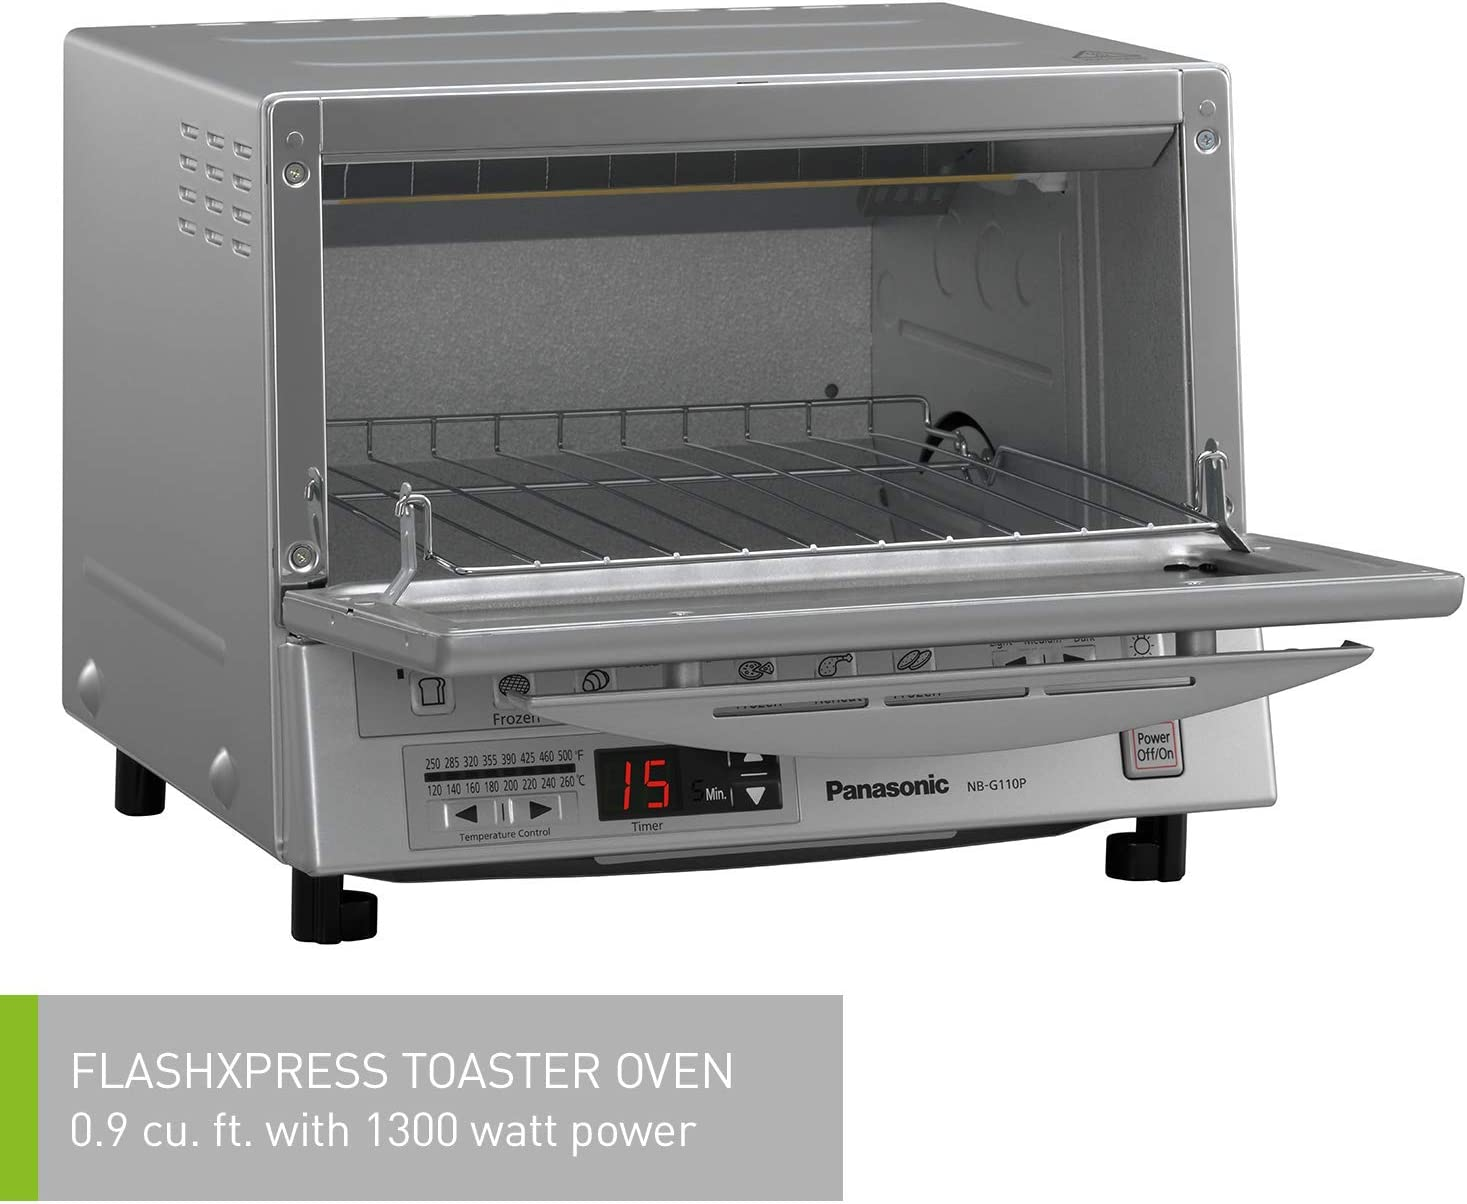 Panasonic FlashXpress Compact Toaster Oven with Double Infrared Heating NB-G110P-K 4 Slice Countertop Toaster Oven Black Renewed Crumb Tray and 1300 Watts of Cooking Power